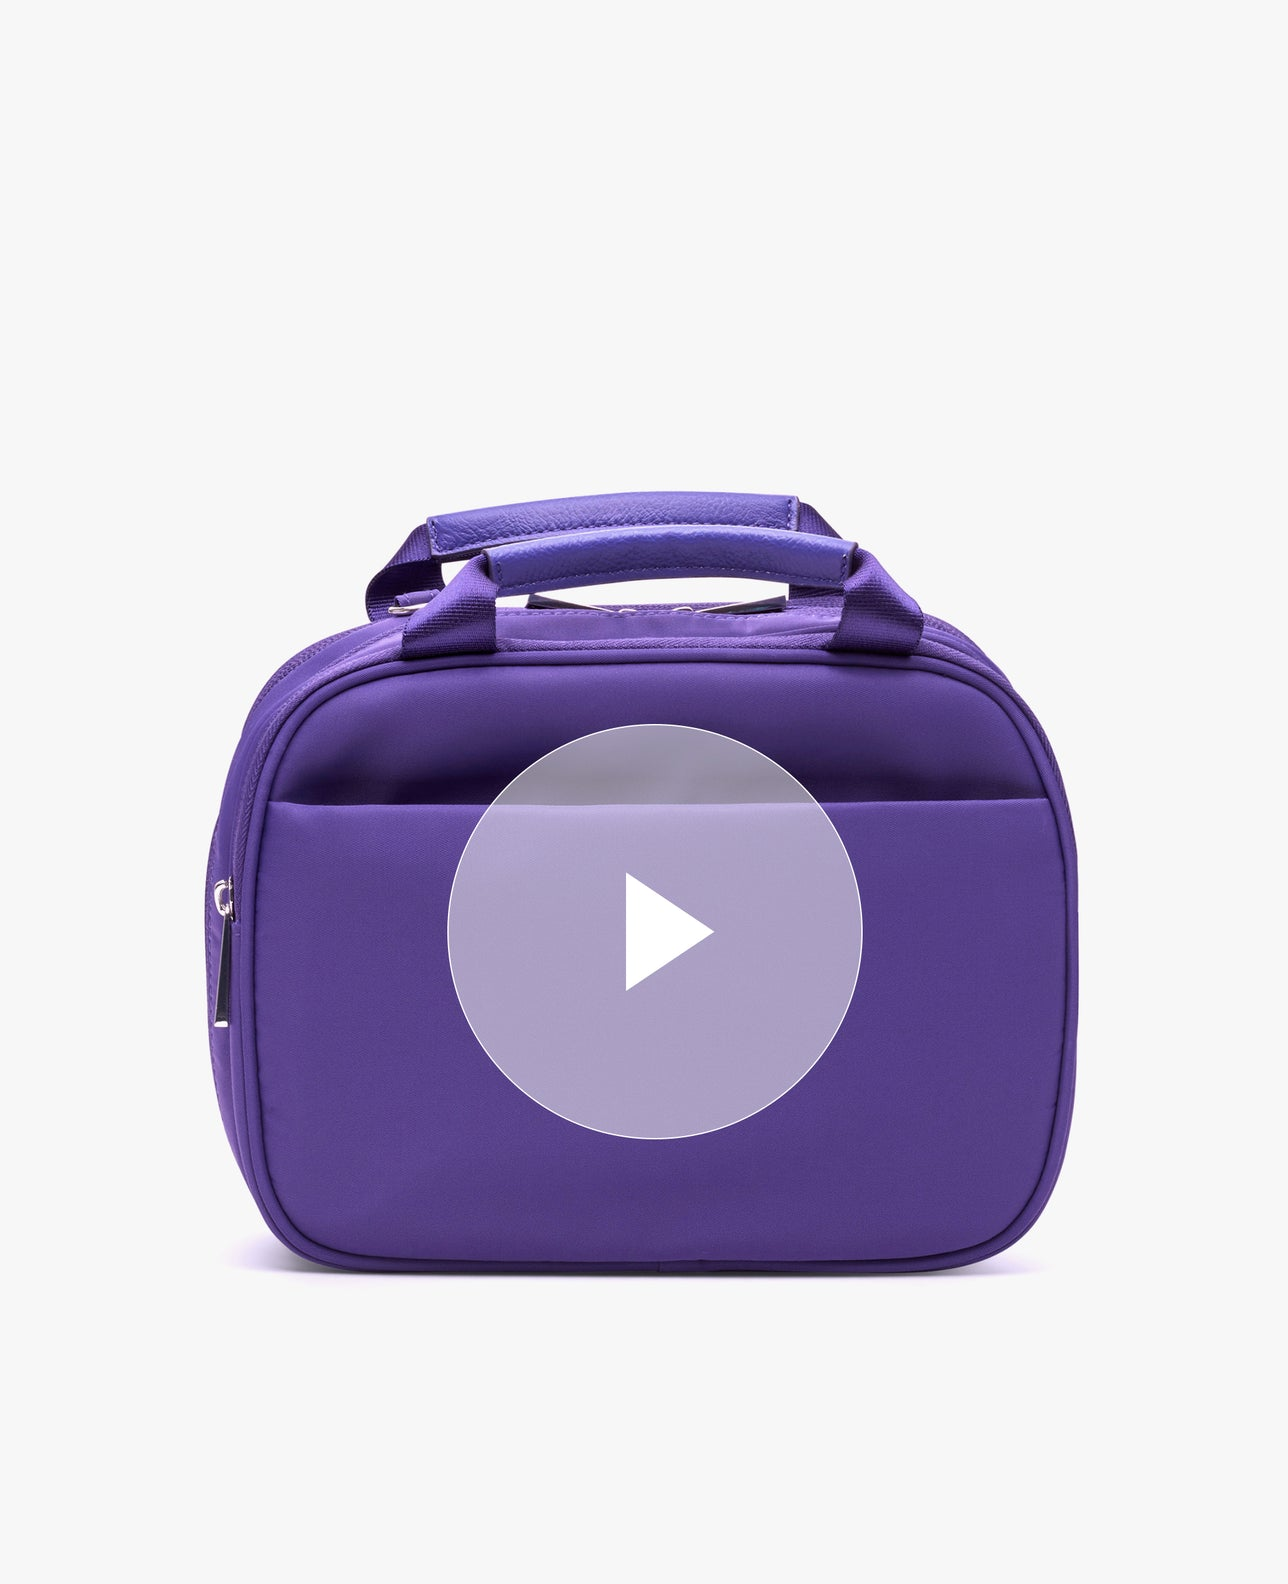 color:Purple Nylon  https://youtube.com/embed/Jo6x-jNhs-4